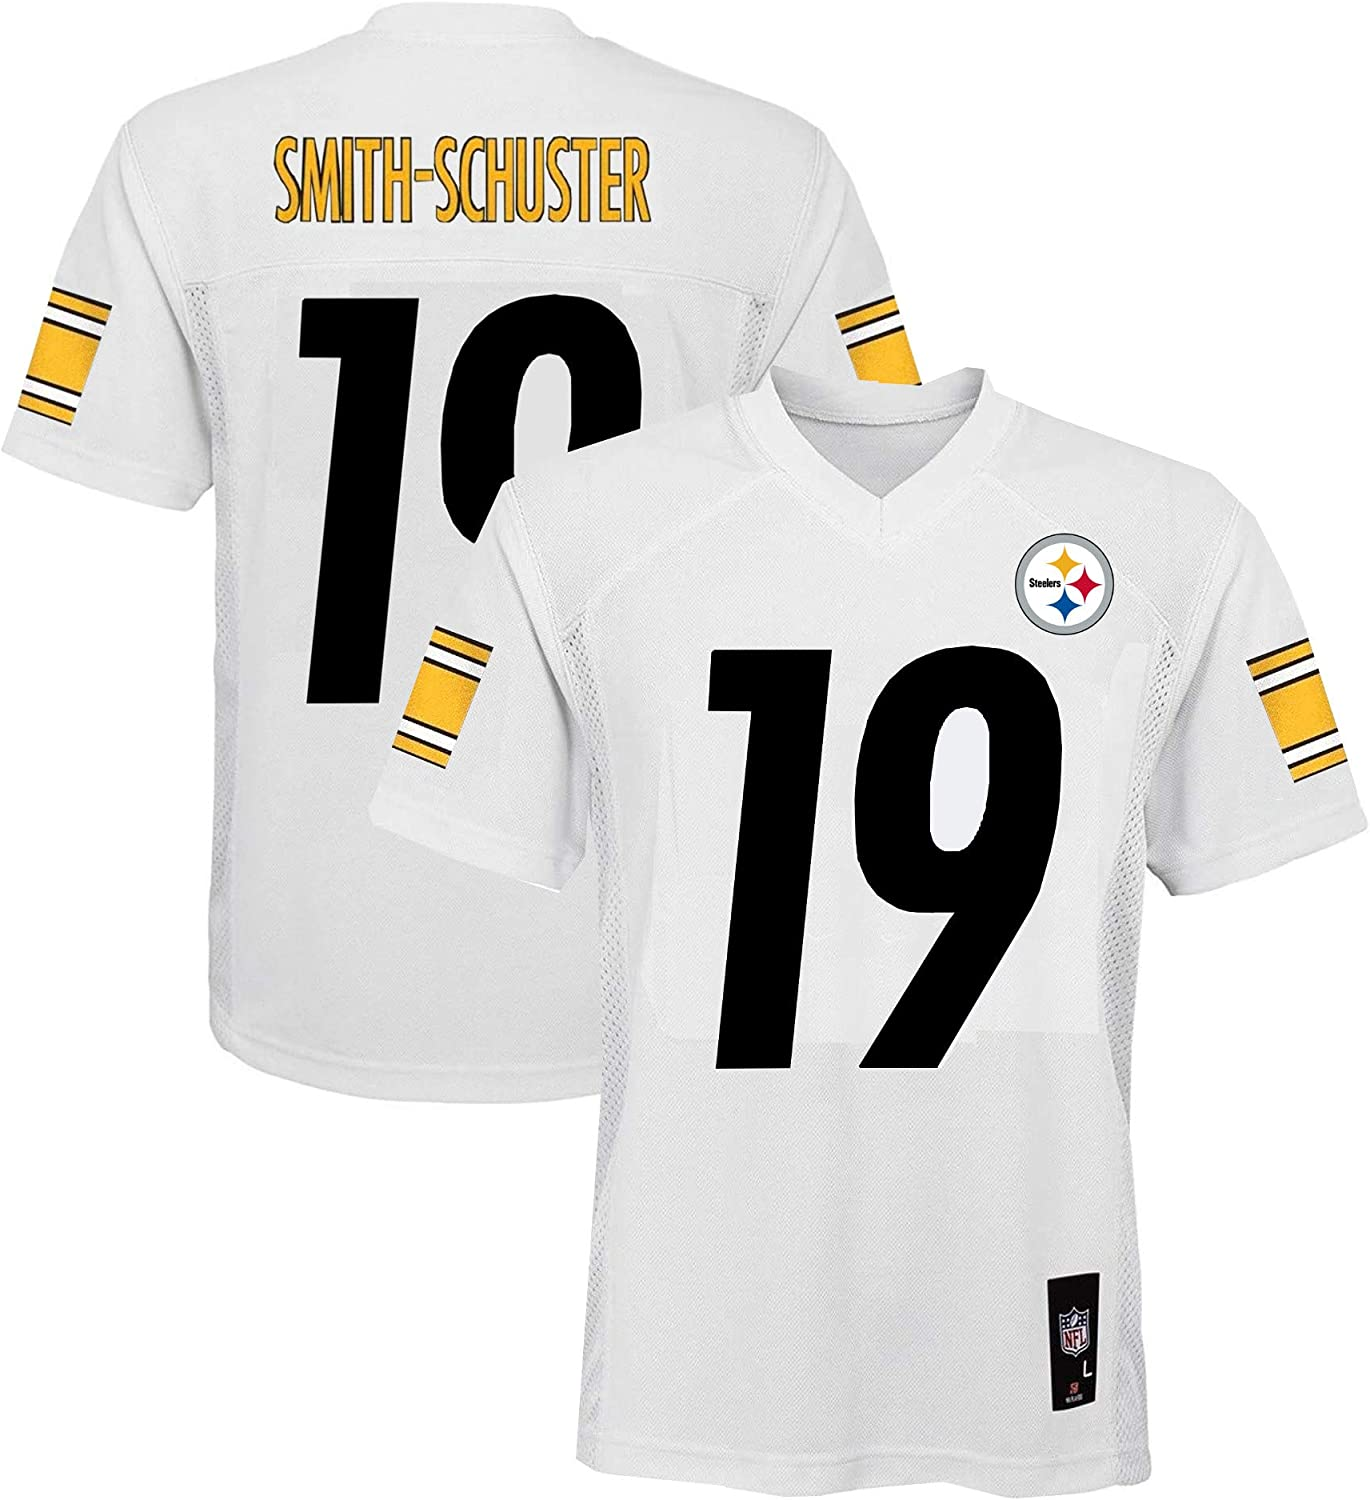 Juju Smith-Schuster Pittsburgh Steelers NFL Boys Youth 8-20 White Road Mid-Tier Jersey